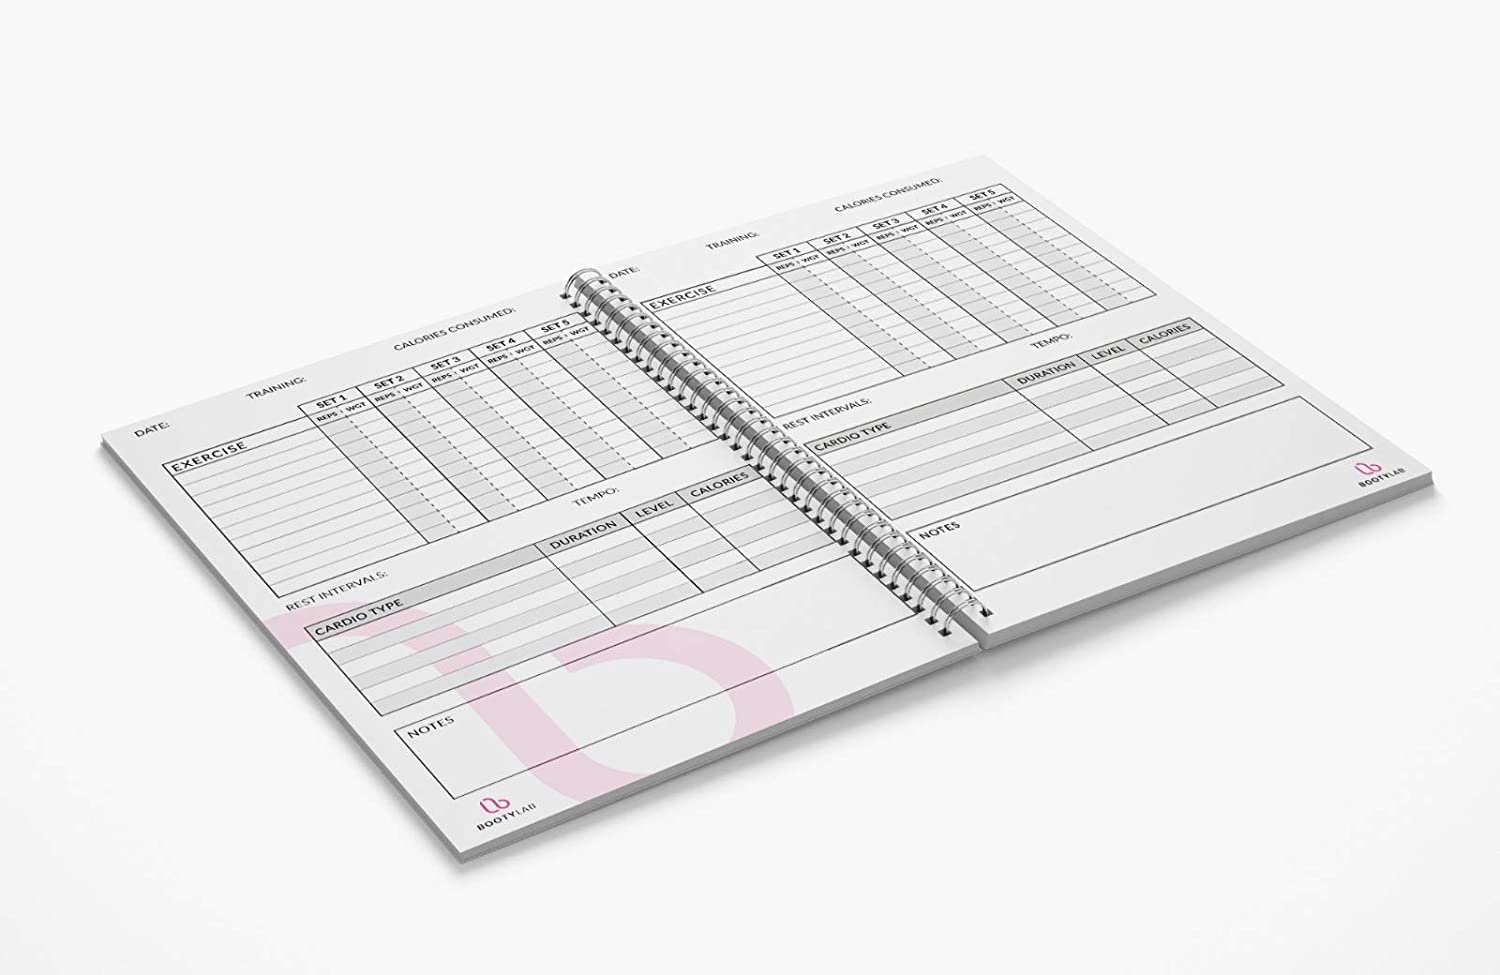 Exercise/Workout Log Book & Calorie Tracker